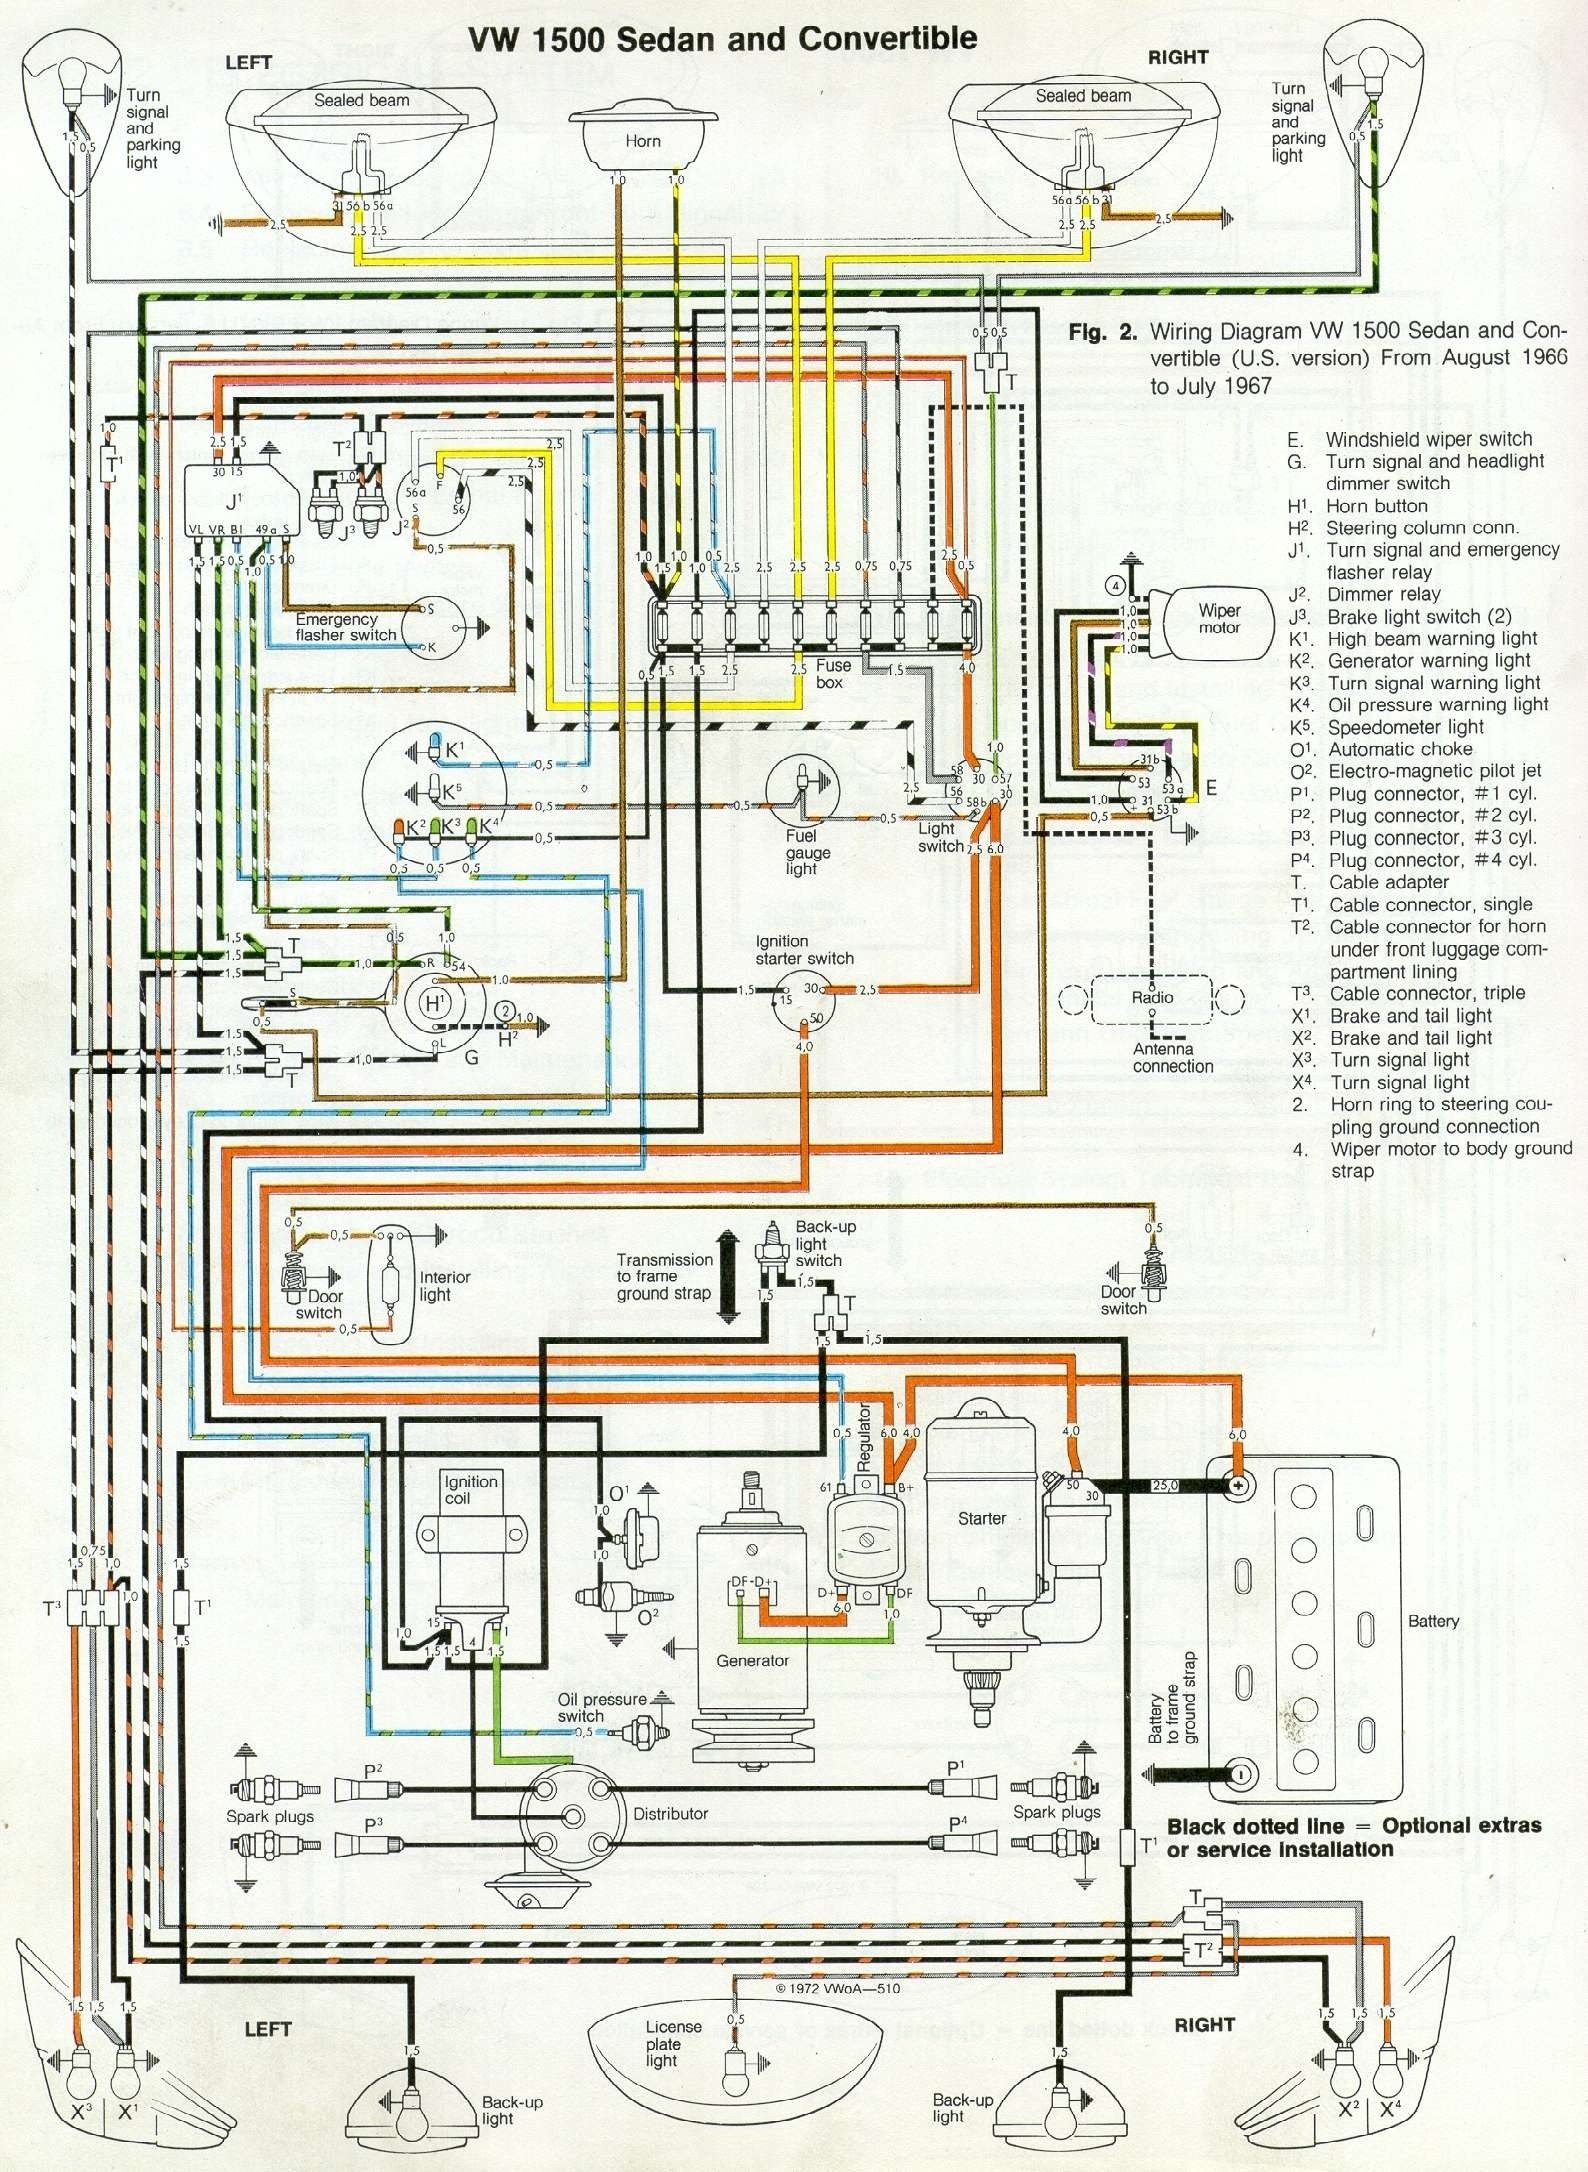 80fbec6dc035e6862b5ab48389504277 66 and '67 vw beetle wiring diagram vw beetles, beetles and sedans 1957 vw bug wiring diagram at edmiracle.co